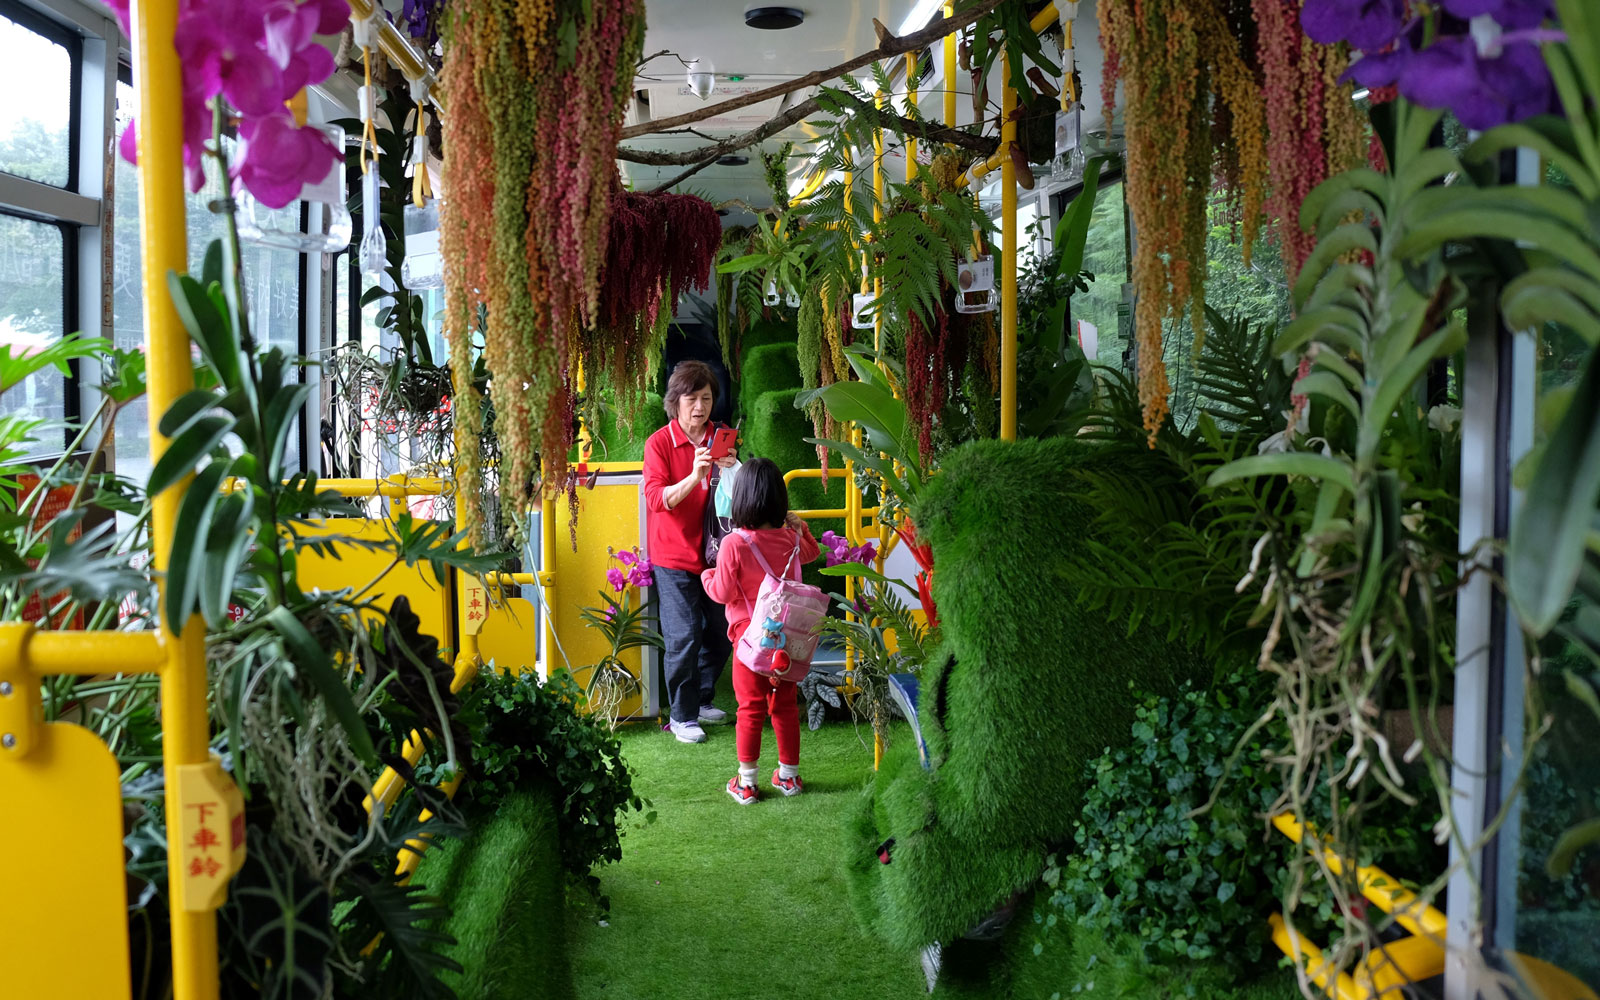 Commute with nature on this bus-turned-forest in Taipei